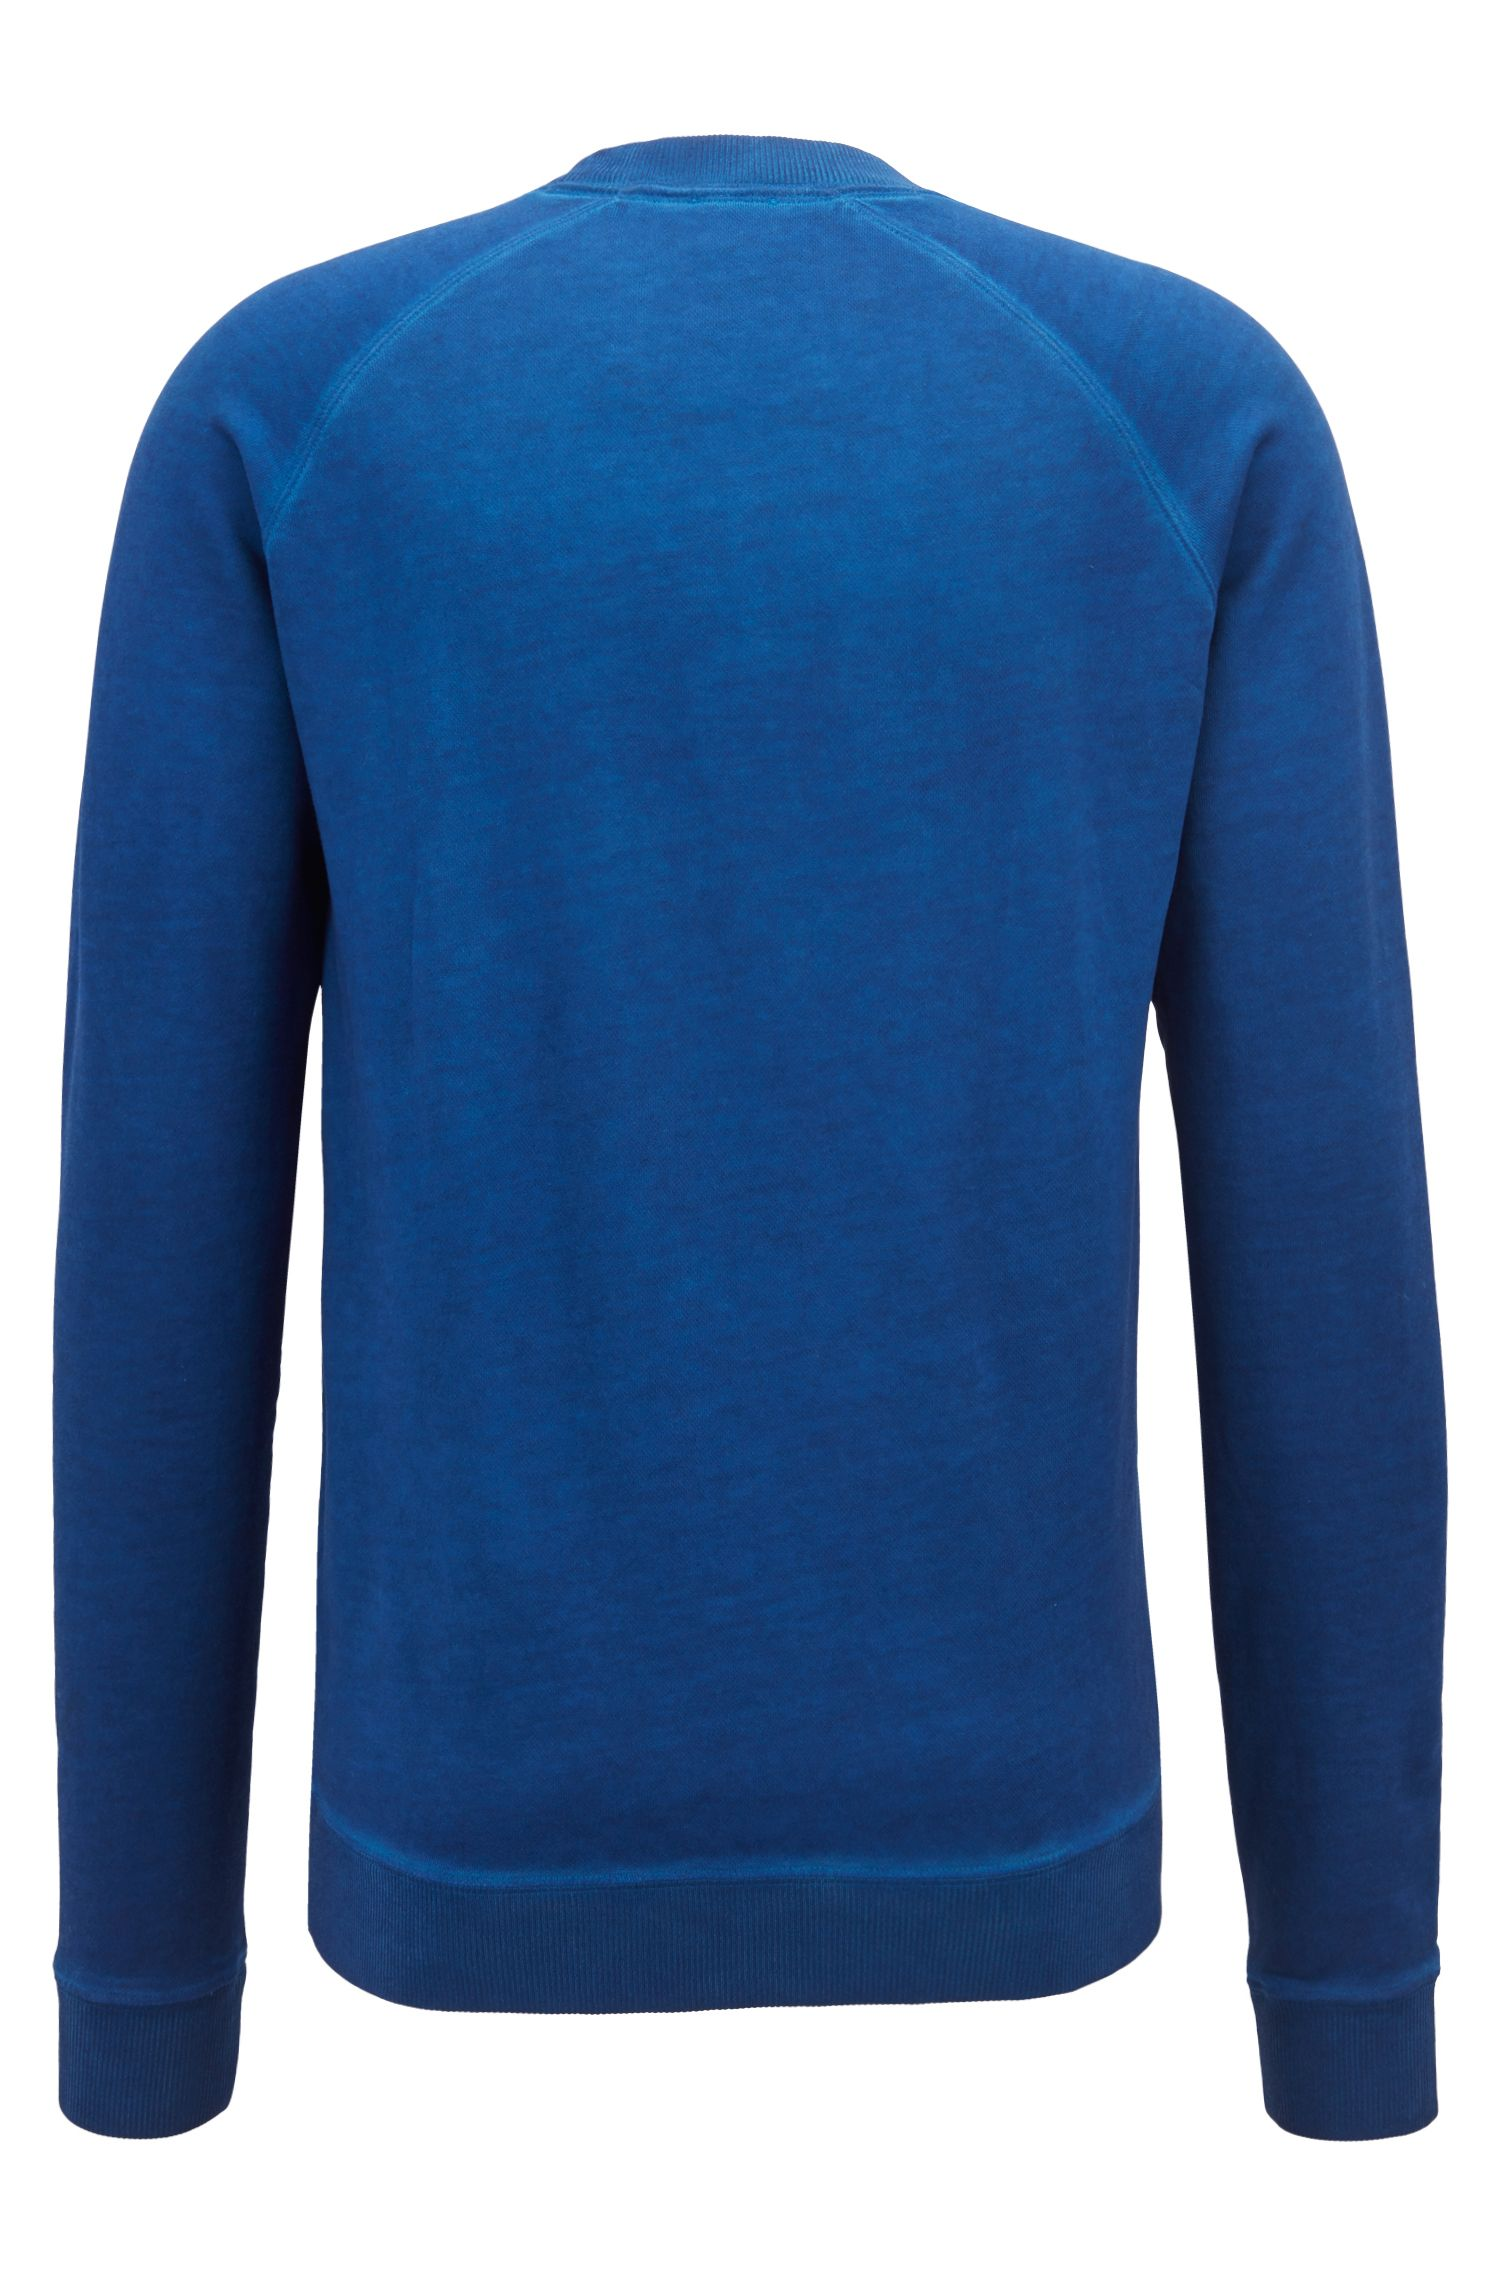 French-terry sweatshirt with embroidered logo, Blue